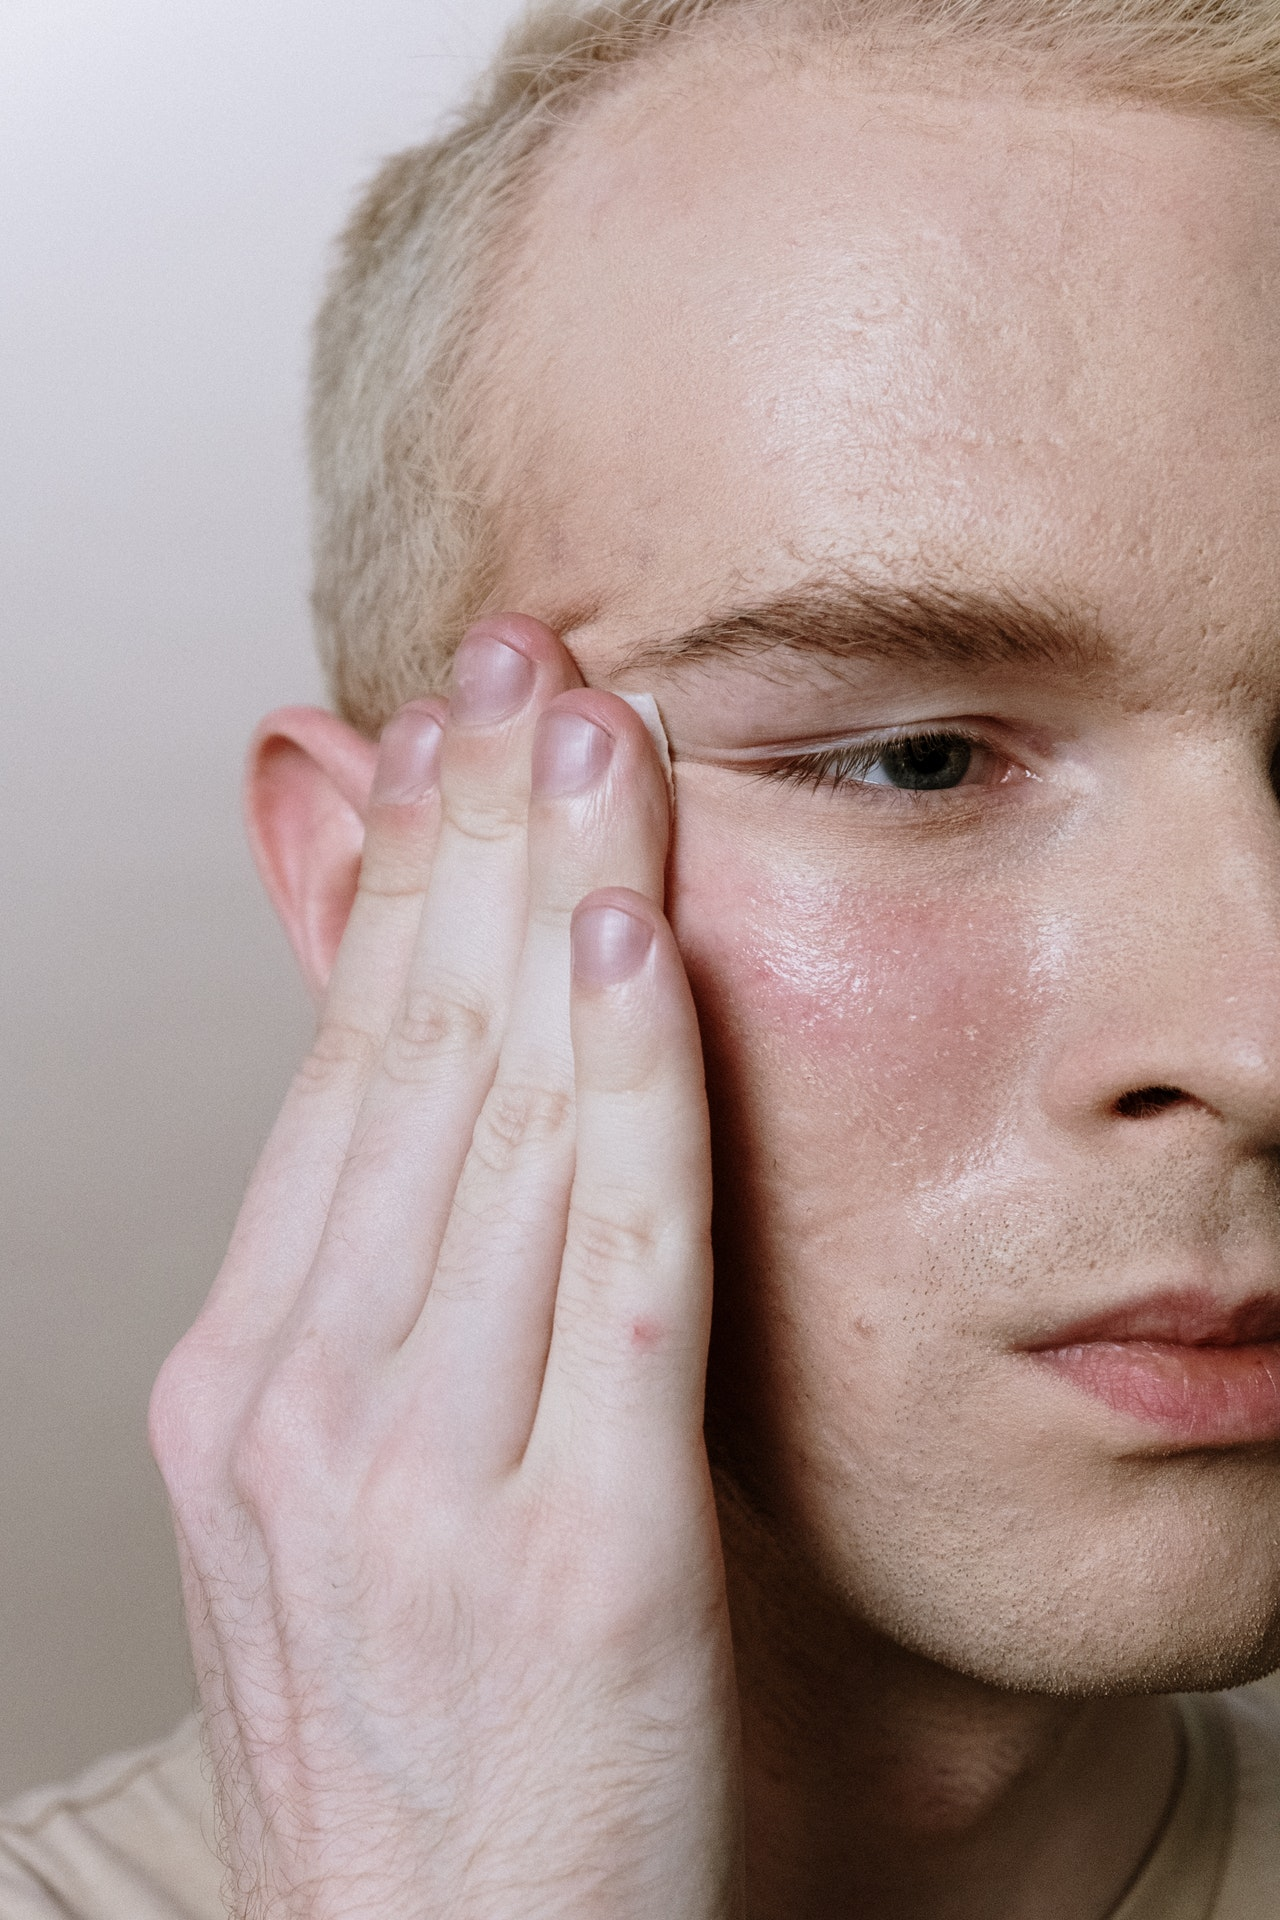 Getting Rid of Acne Scars on Your Skin